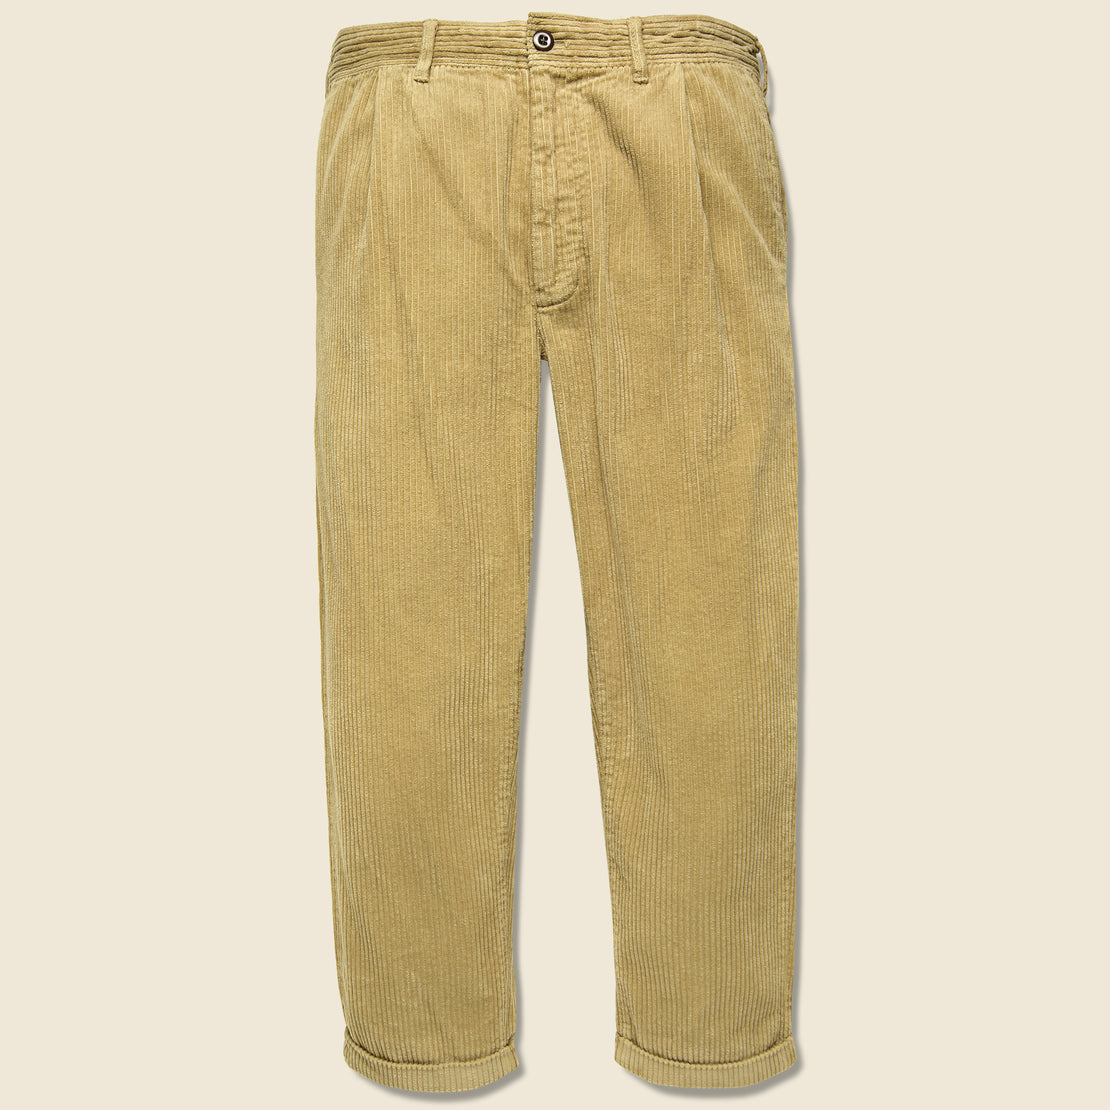 Alex Mill Corduroy Pleated Pant - Khaki